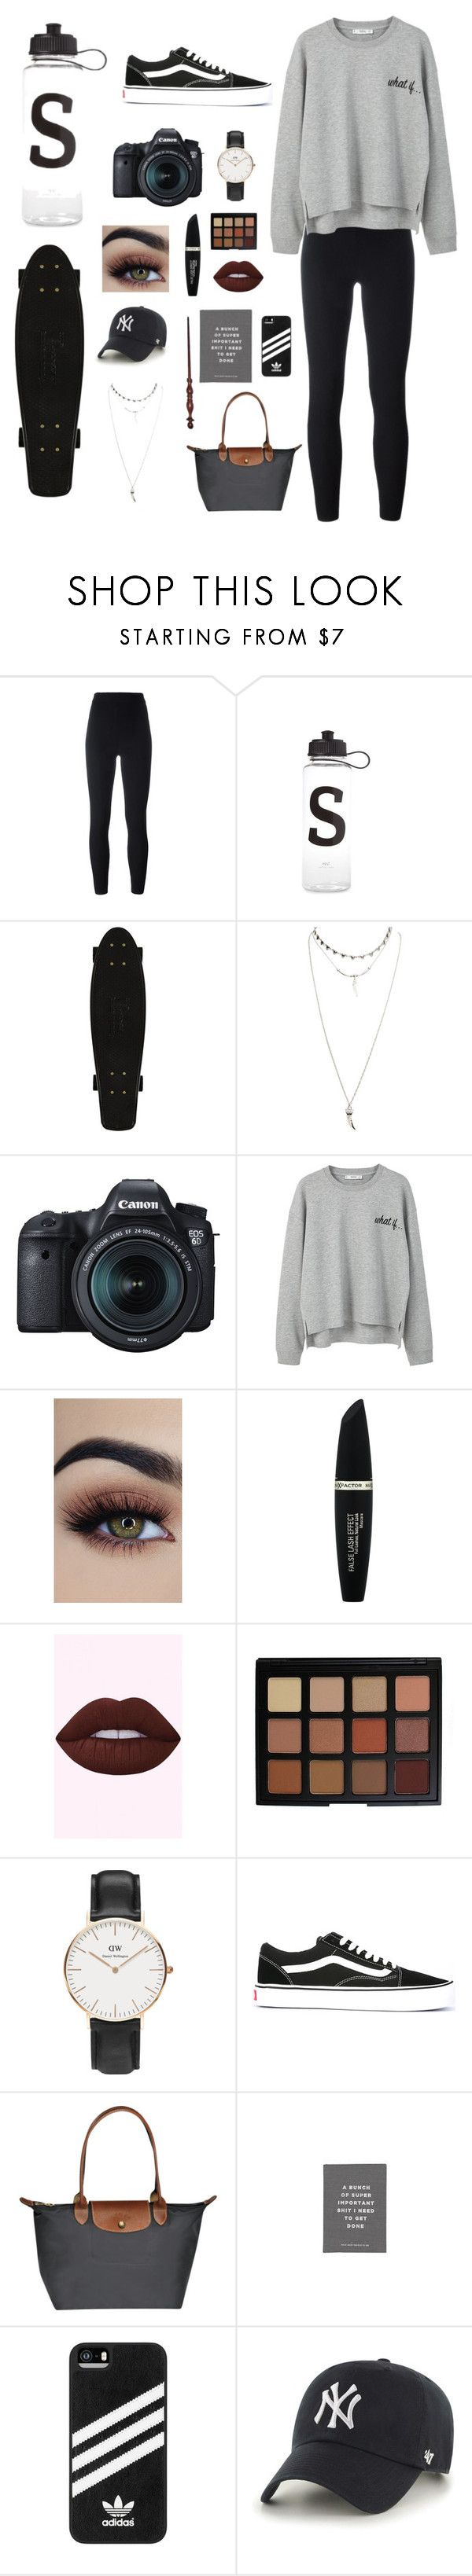 """""""Untitled #33"""" by selma-malfoy ❤ liked on Polyvore featuring Yeezy by Kanye West, Wet Seal, Eos, MANGO, Max Factor, Morphe, Daniel Wellington, Vans, adidas and '47 Brand"""